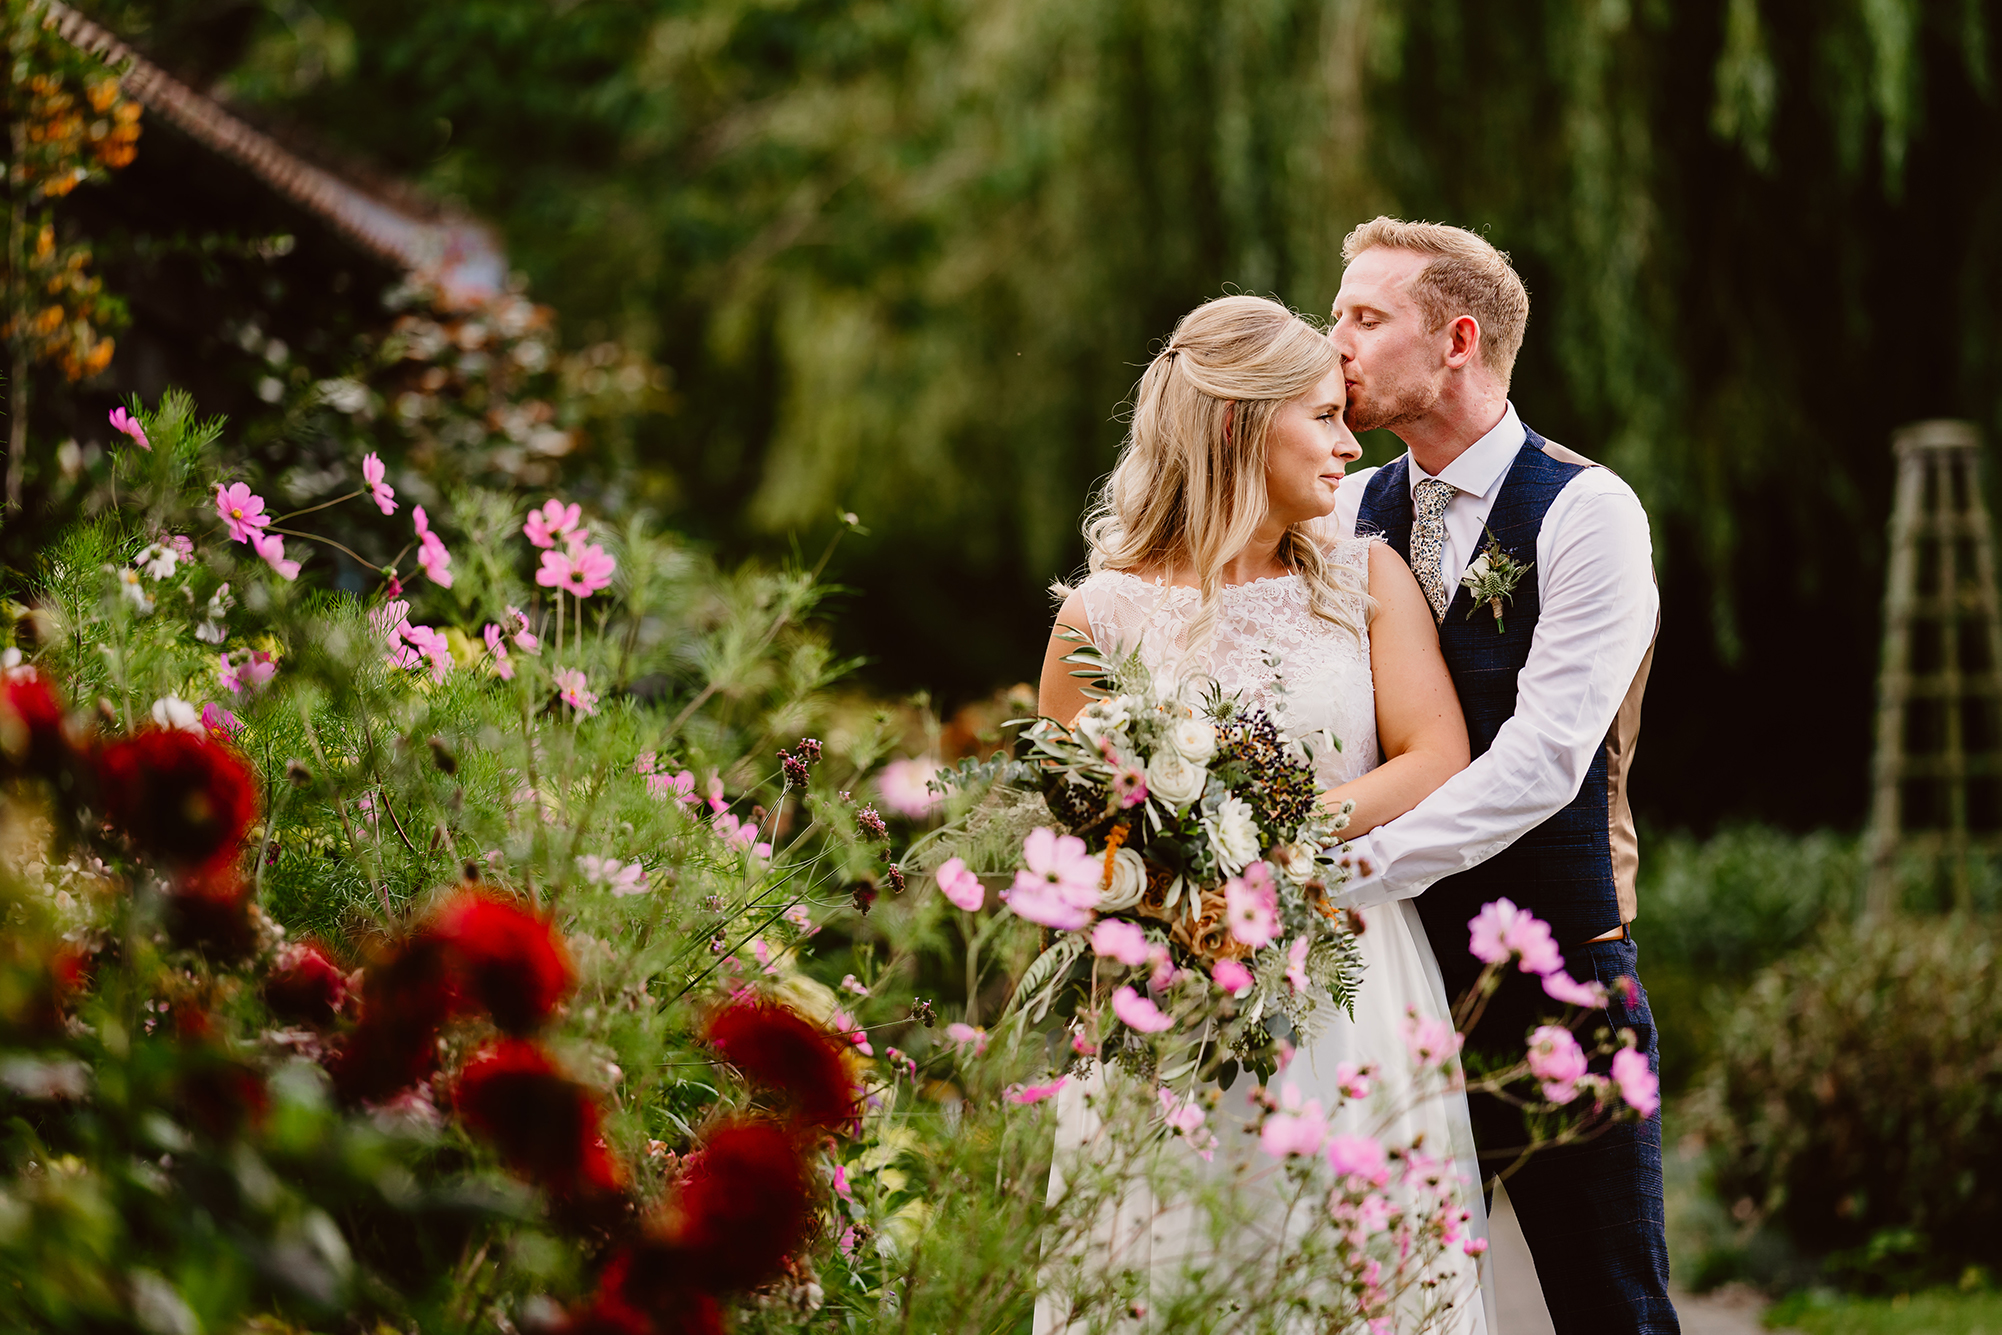 Newlyweds Genevieve & John Share Kiss in the Flower Gardens at Ivy House Country Hotel